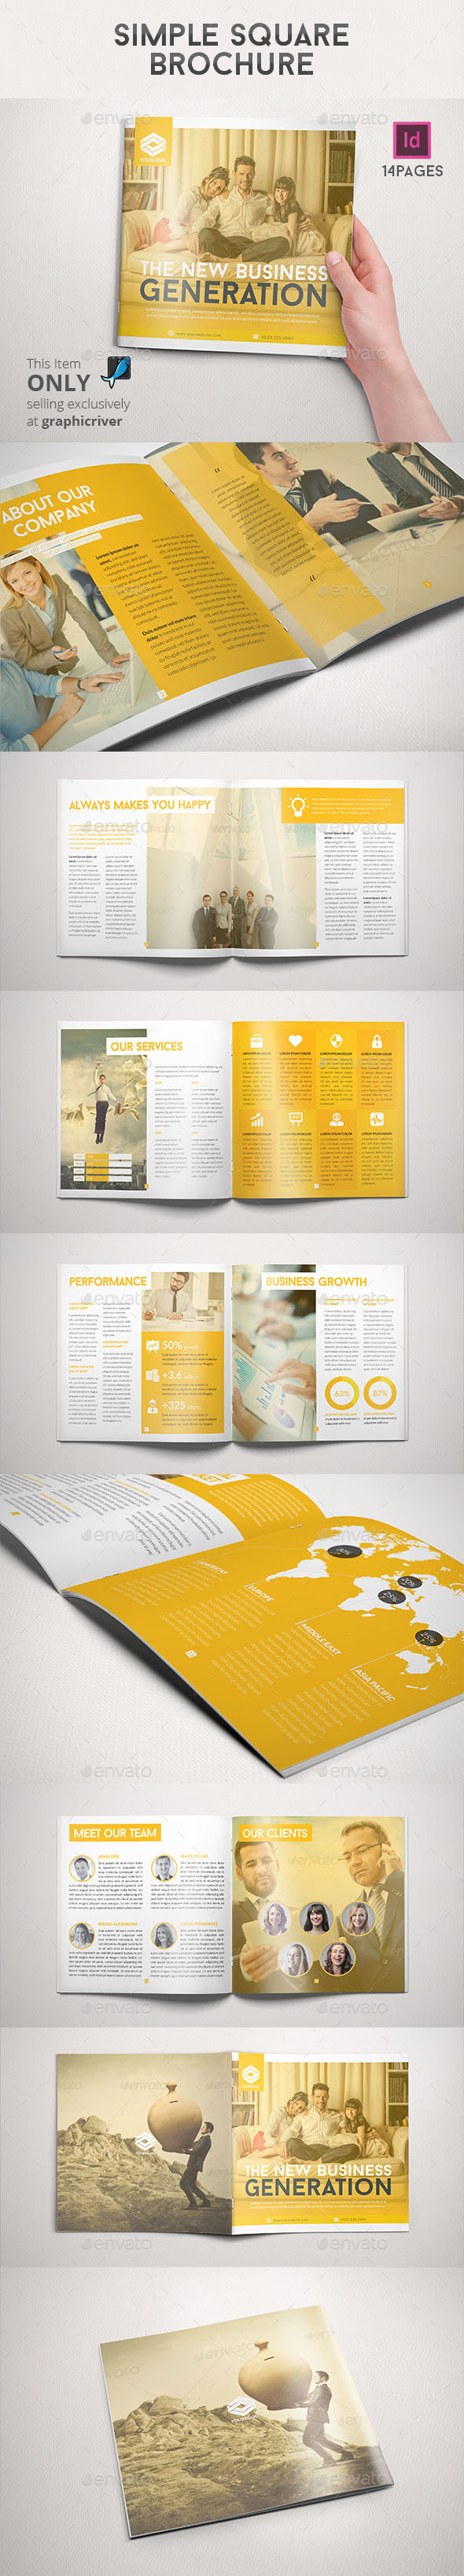 Simple Square Brochure - Informational Brochures